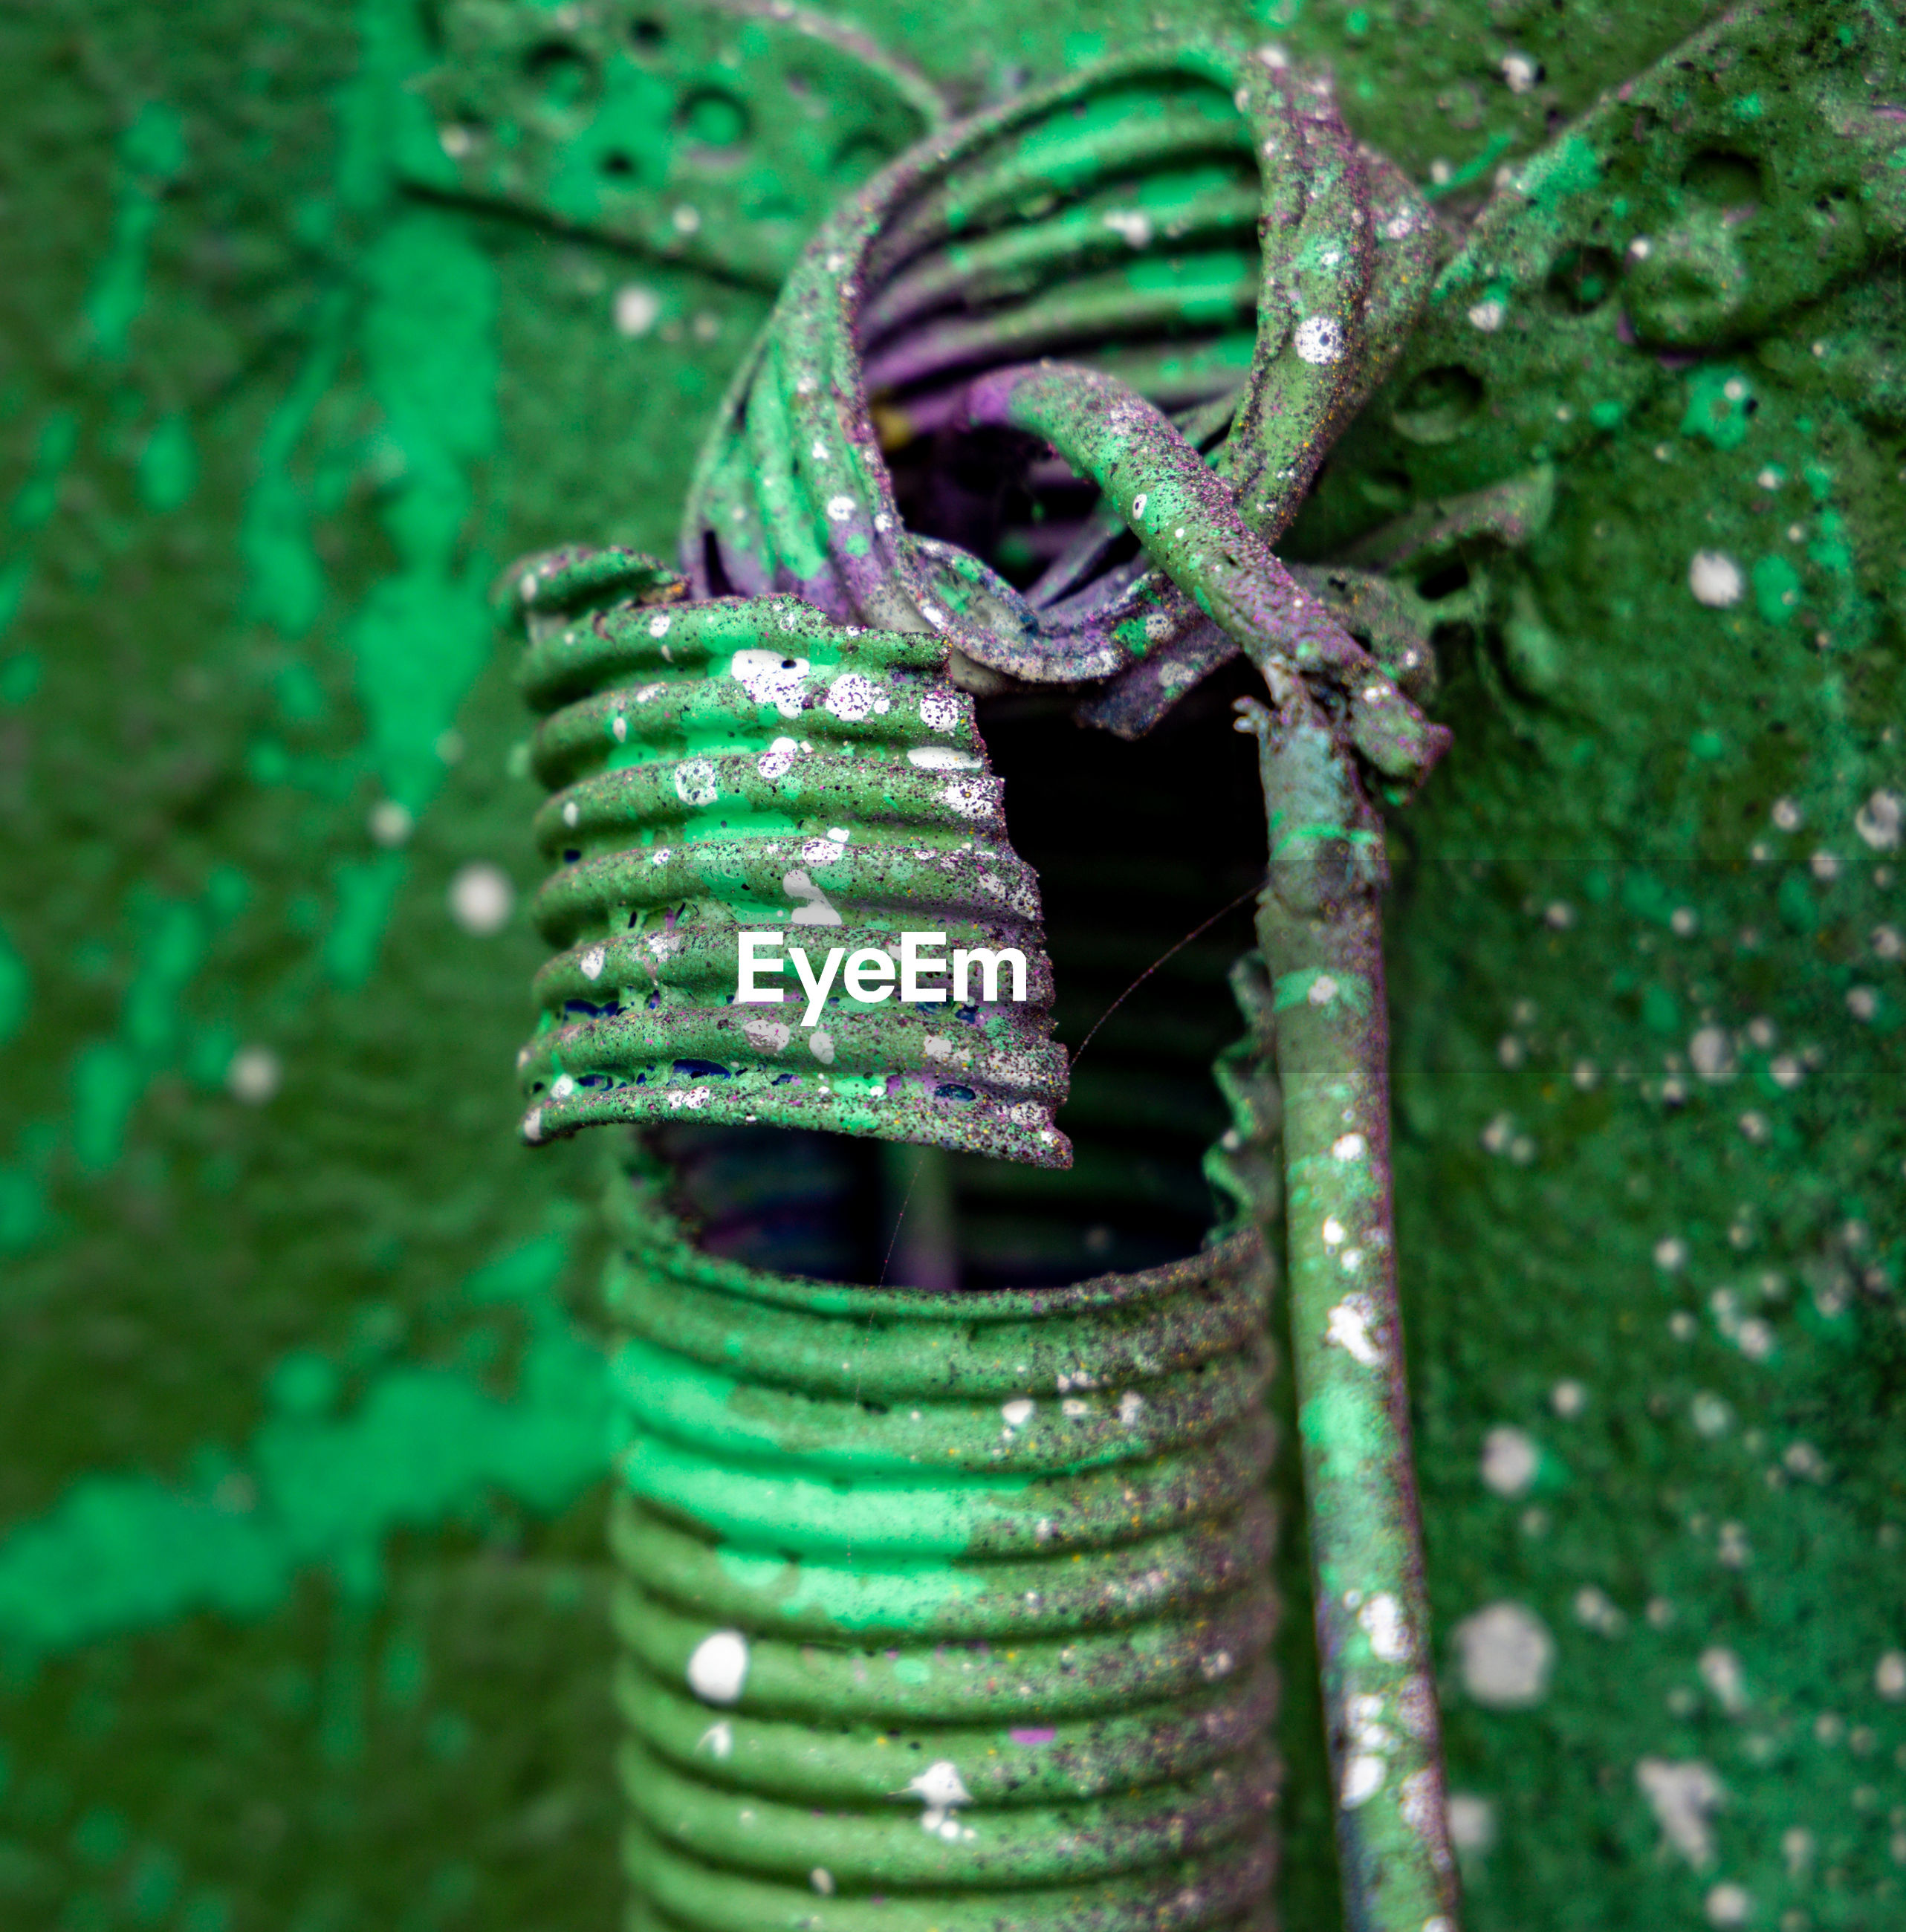 Close-up of electric wires on green graffiti background